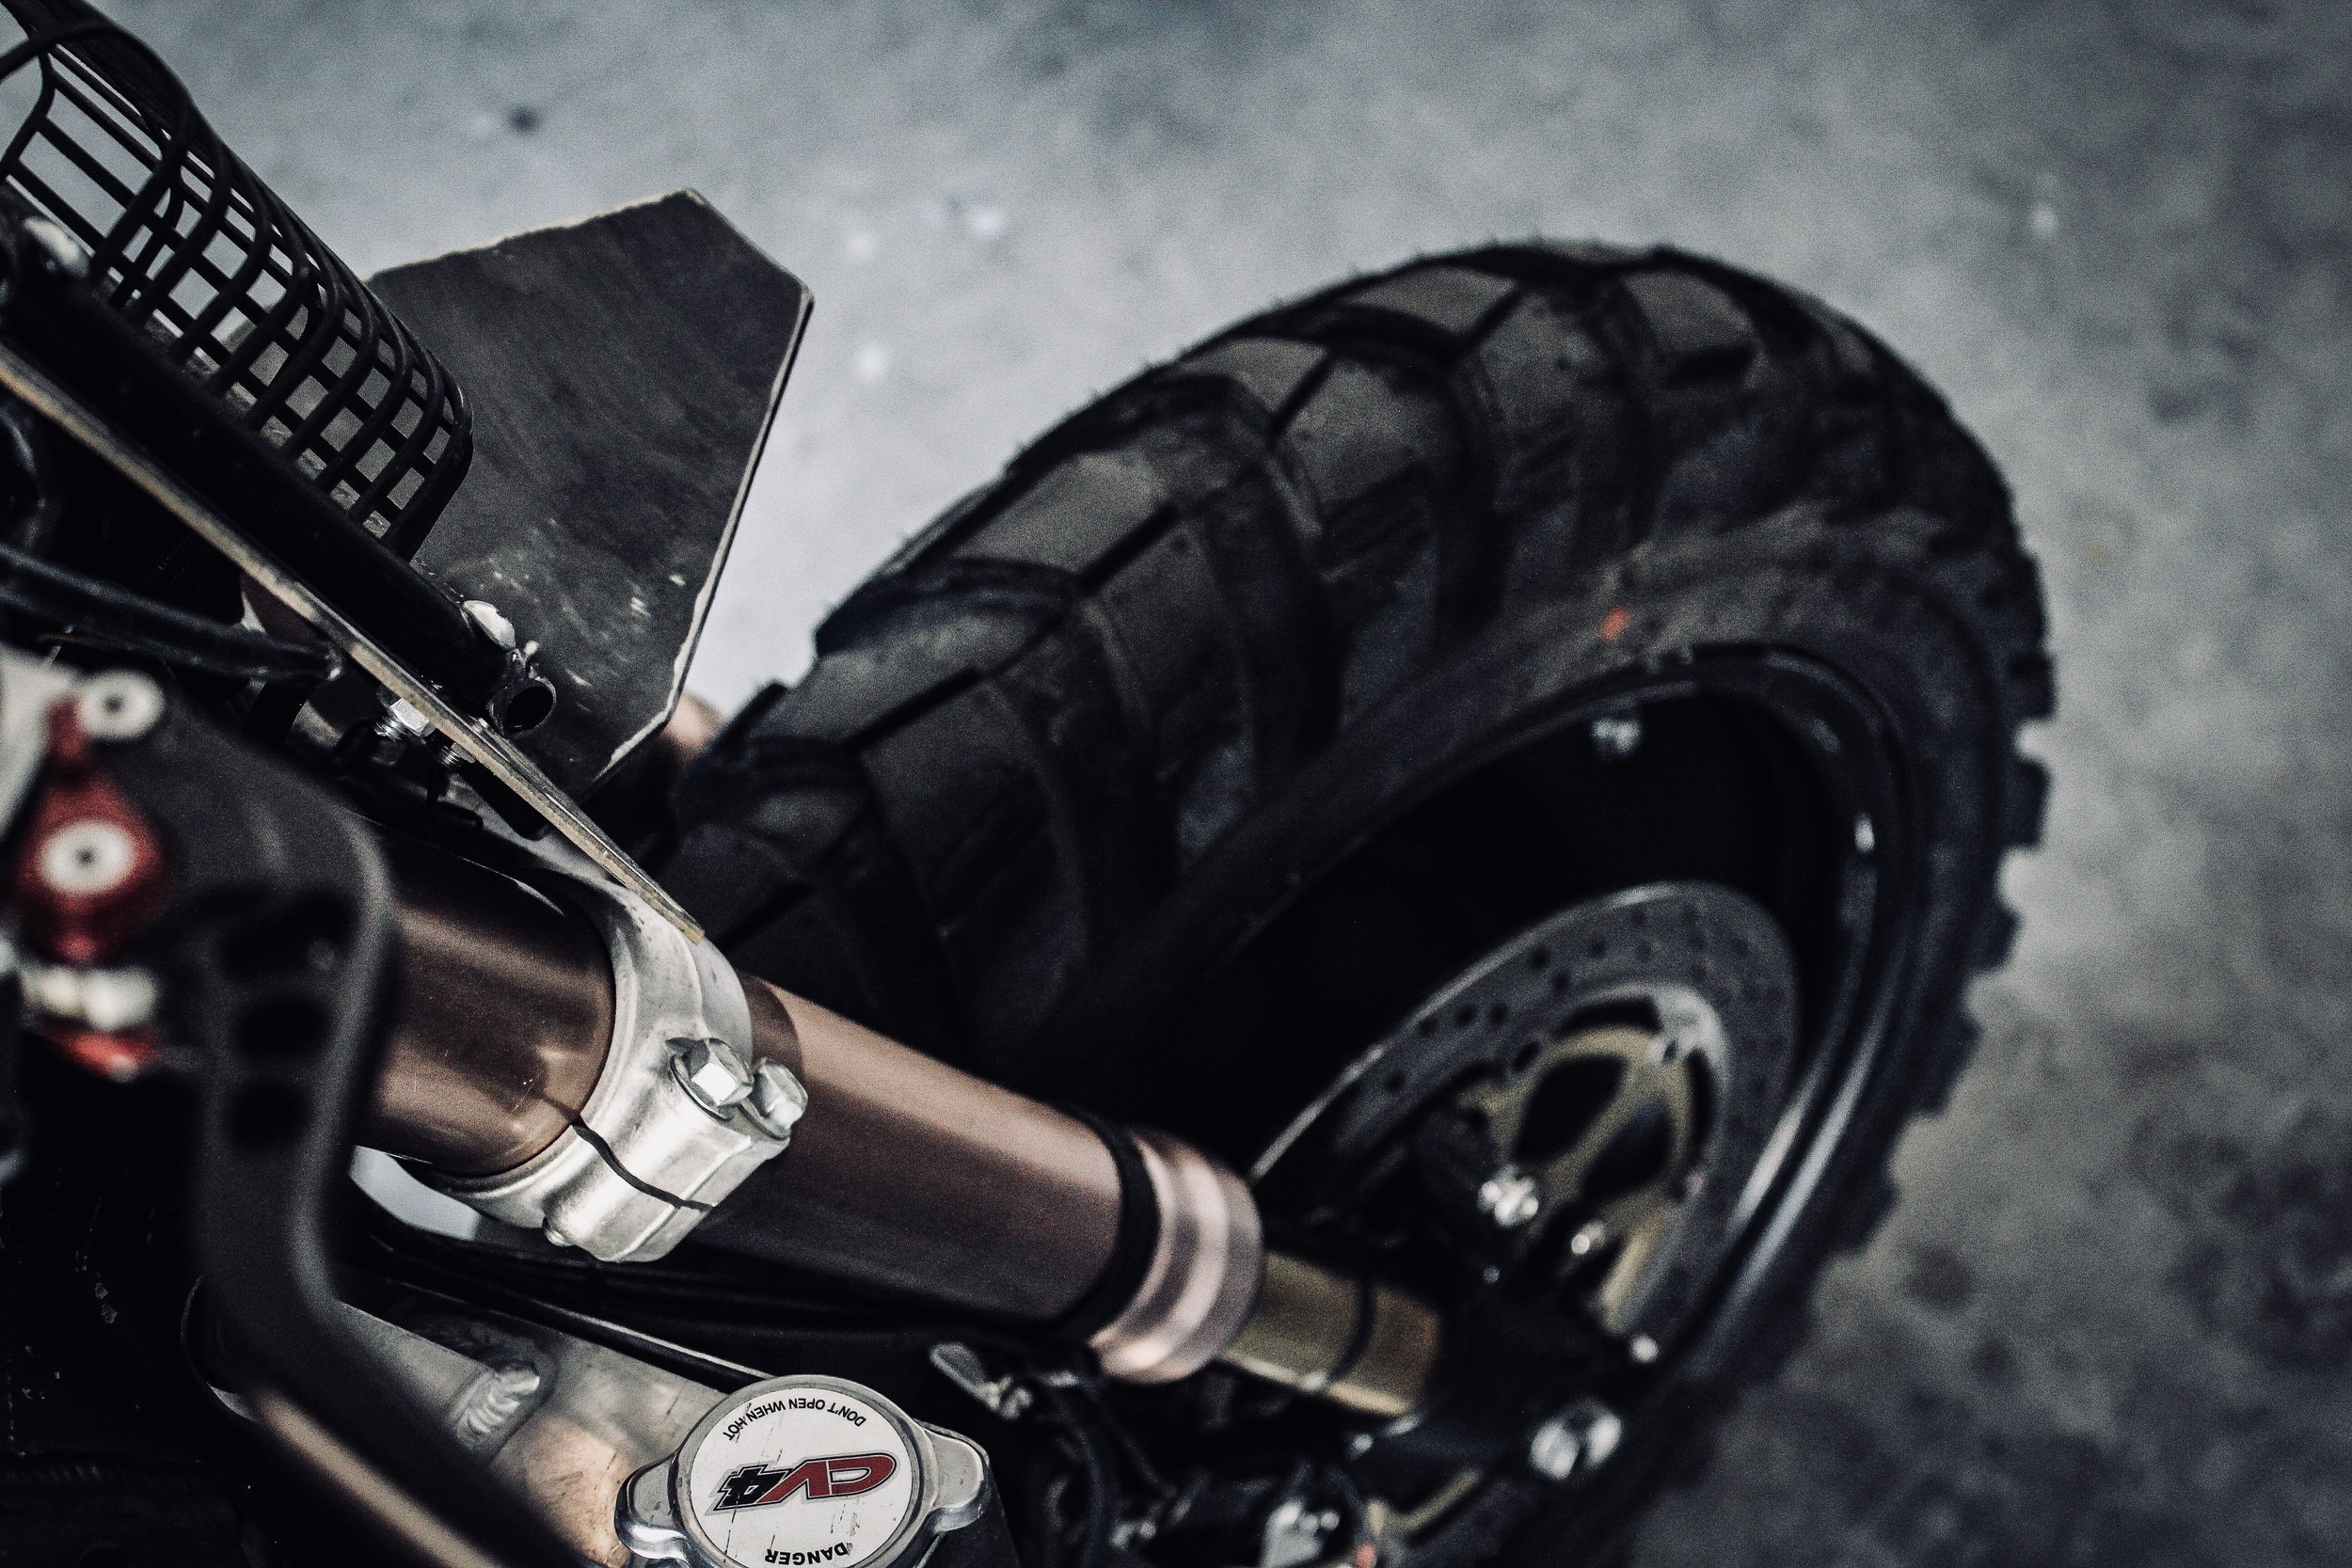 - // TIRESThe ideal tire for any situation. Built tough with a serious bite these tires are adventure ready. With long lasting tread and an aggressive appearance they are the perfect set for your DM-011.